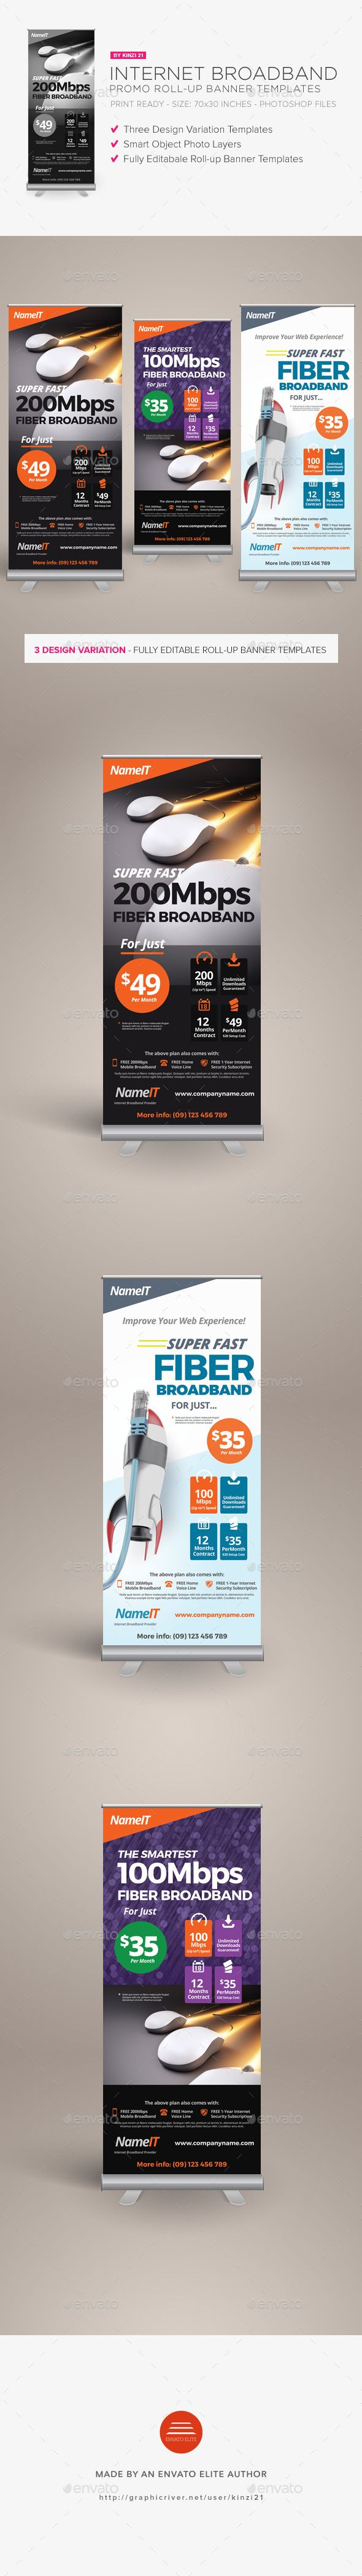 Internet Broadband Promotion Rollup Banner Templates — Photoshop PSD #x-banner...